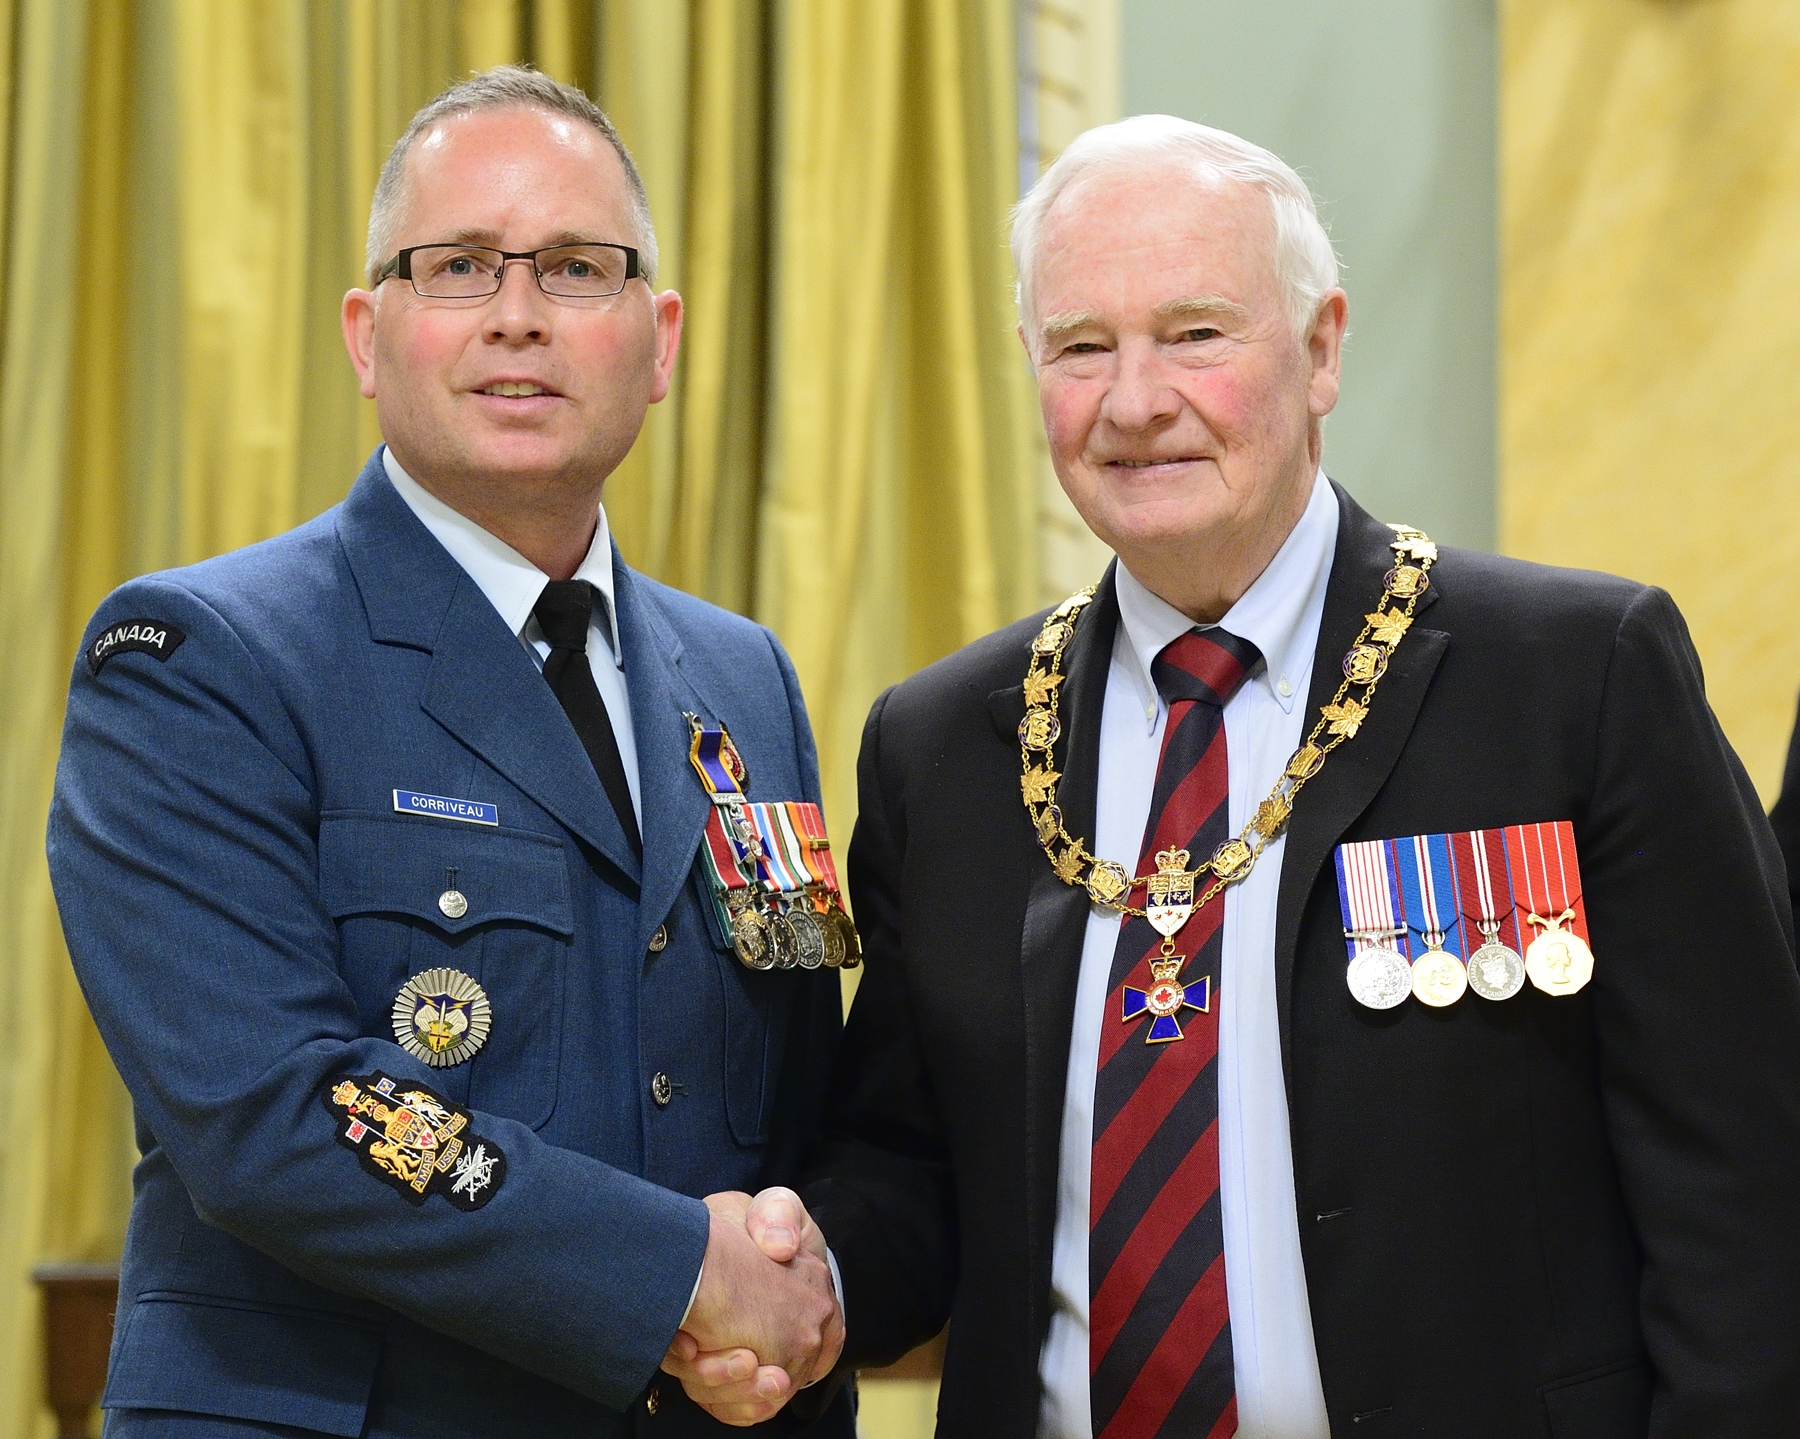 Governor General and Commander-in-Chief of Canada David Johnston presents the Order of Military Merit to Chief Warrant Officer Marc André Corriveau, MMM, CD, from North American Aerospace Defense Command Headquarters, Colorado Springs, Colorado, United States of America PHOTO: Sergeant Johanie Mahieu, Rideau Hall ©, GG05-2017-0075-035-corriveau